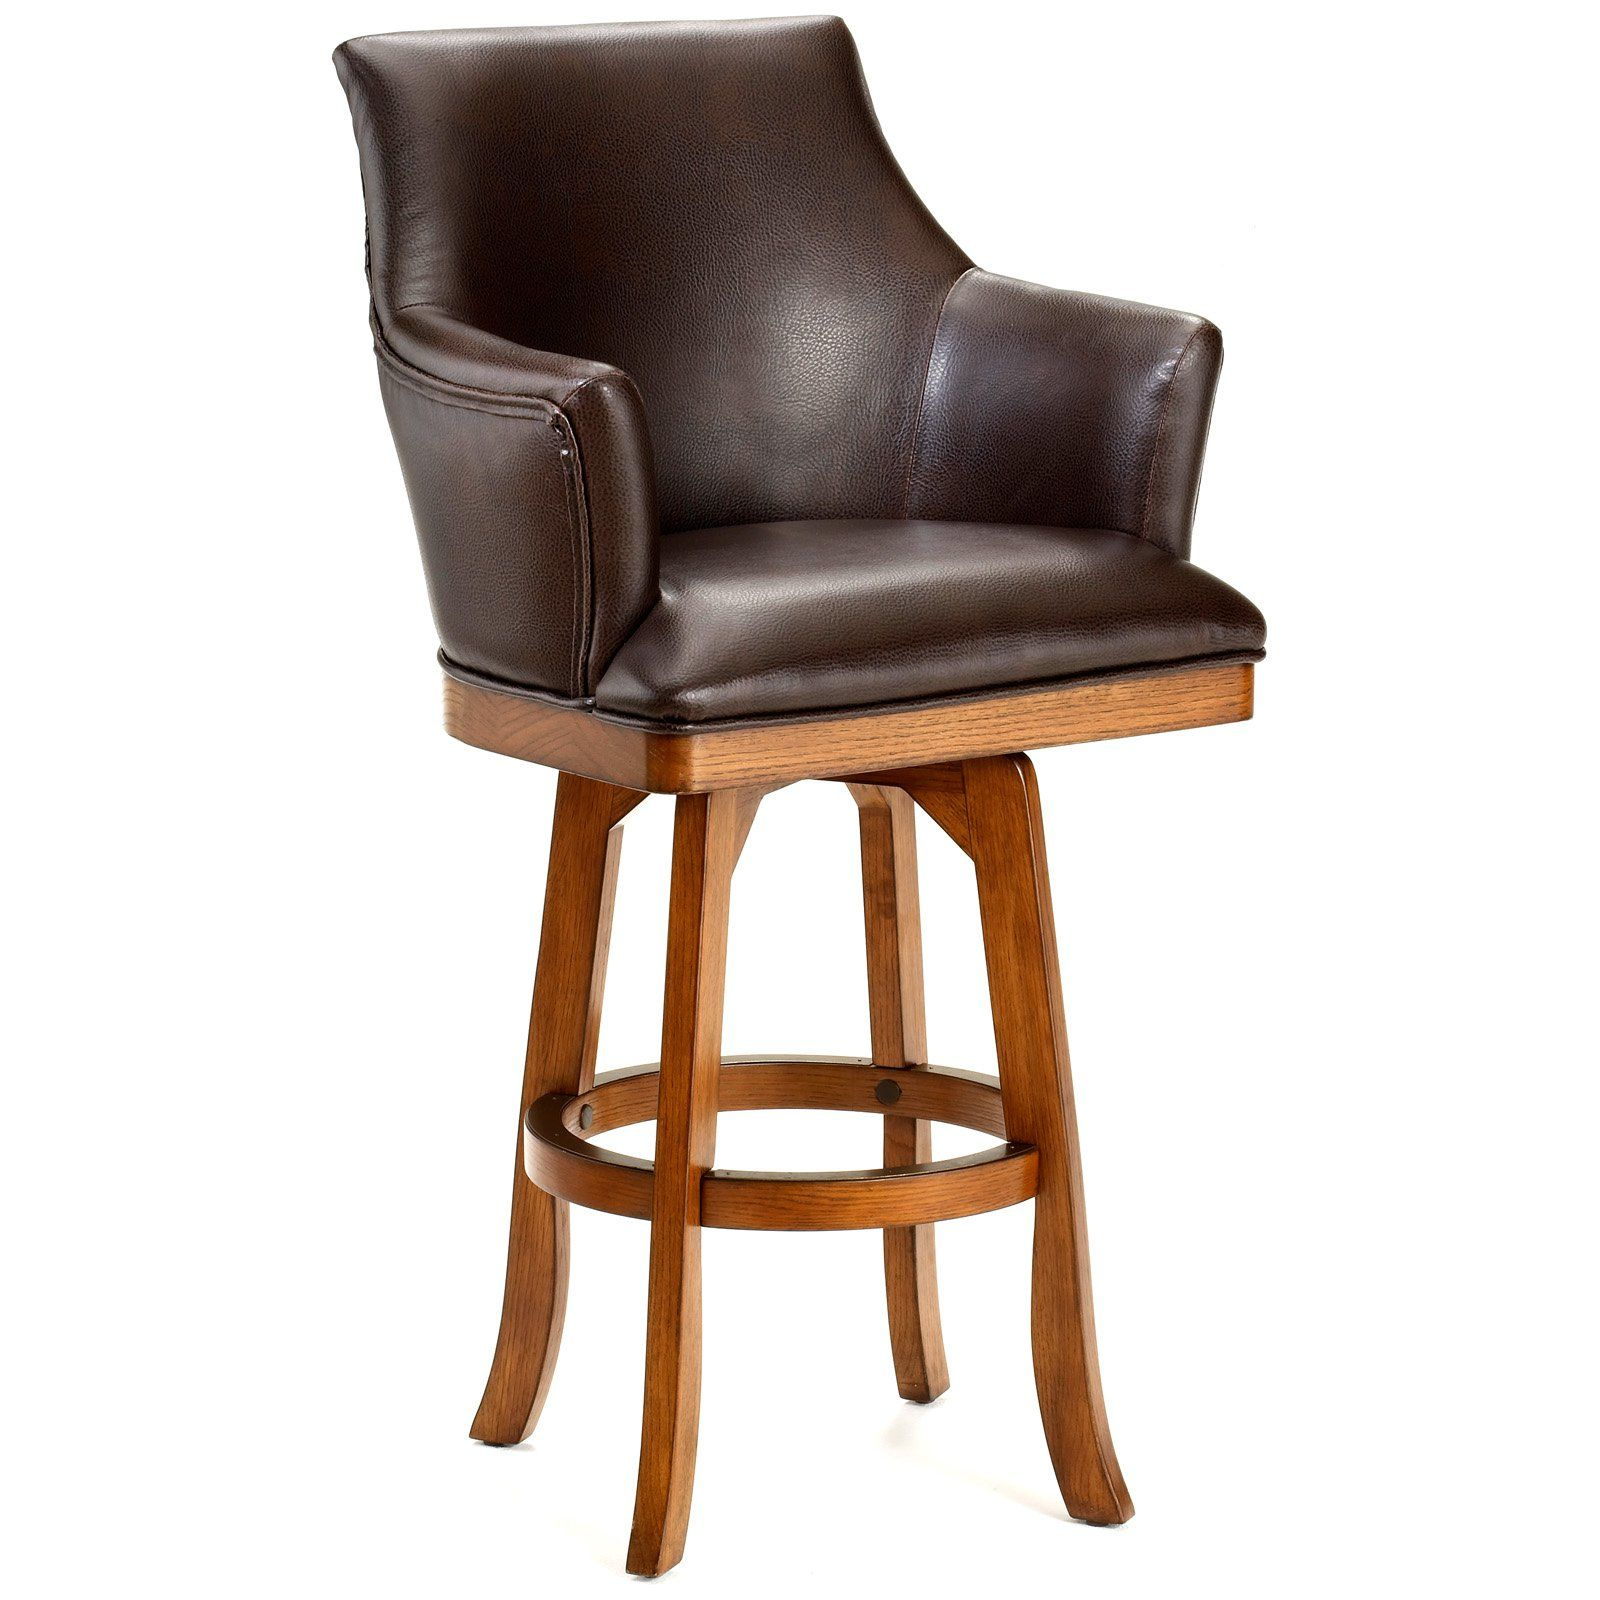 Luxury Wood and Leather Counter Stools